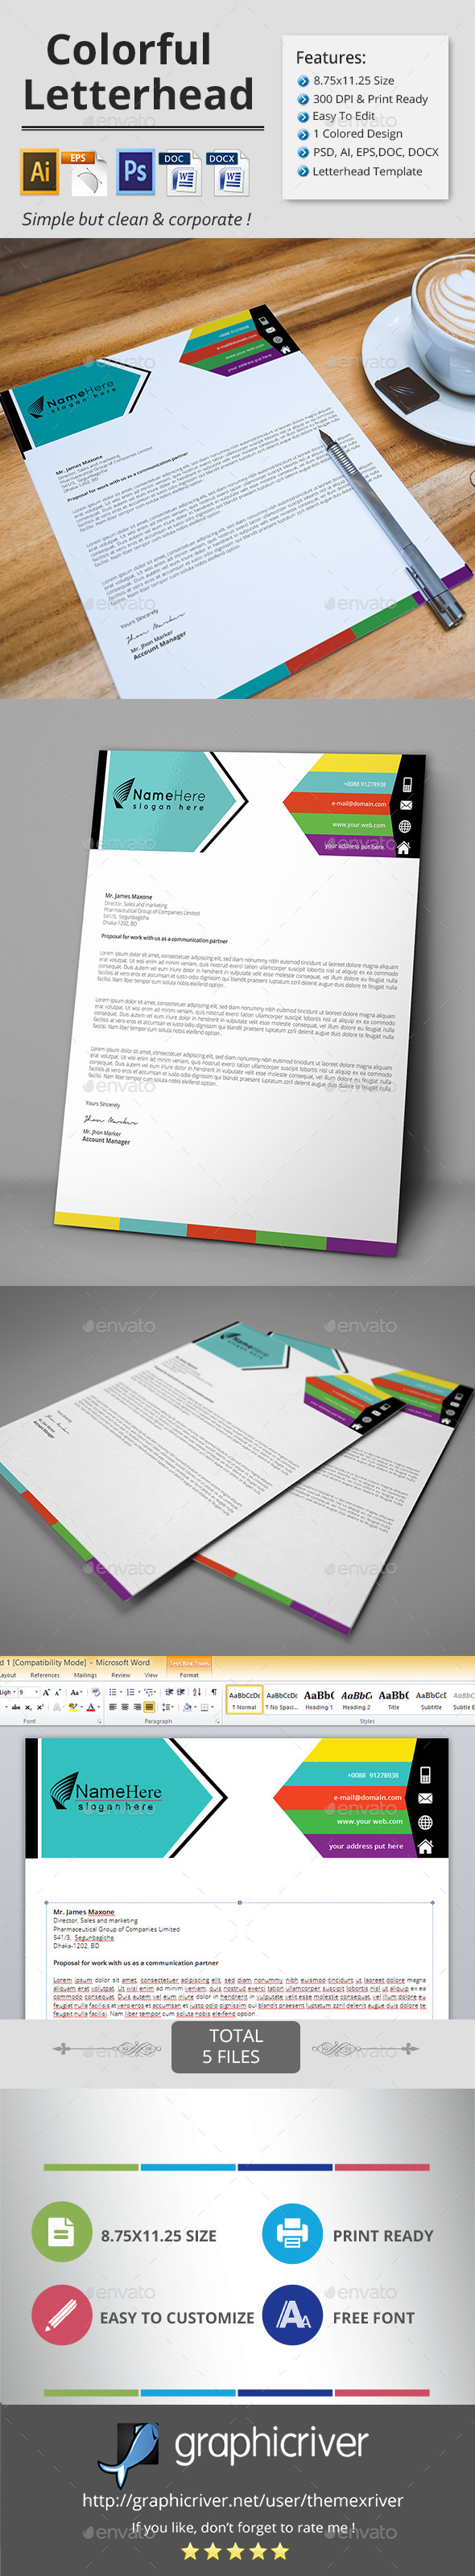 GraphicRiver Colorful Letterhead 11894655